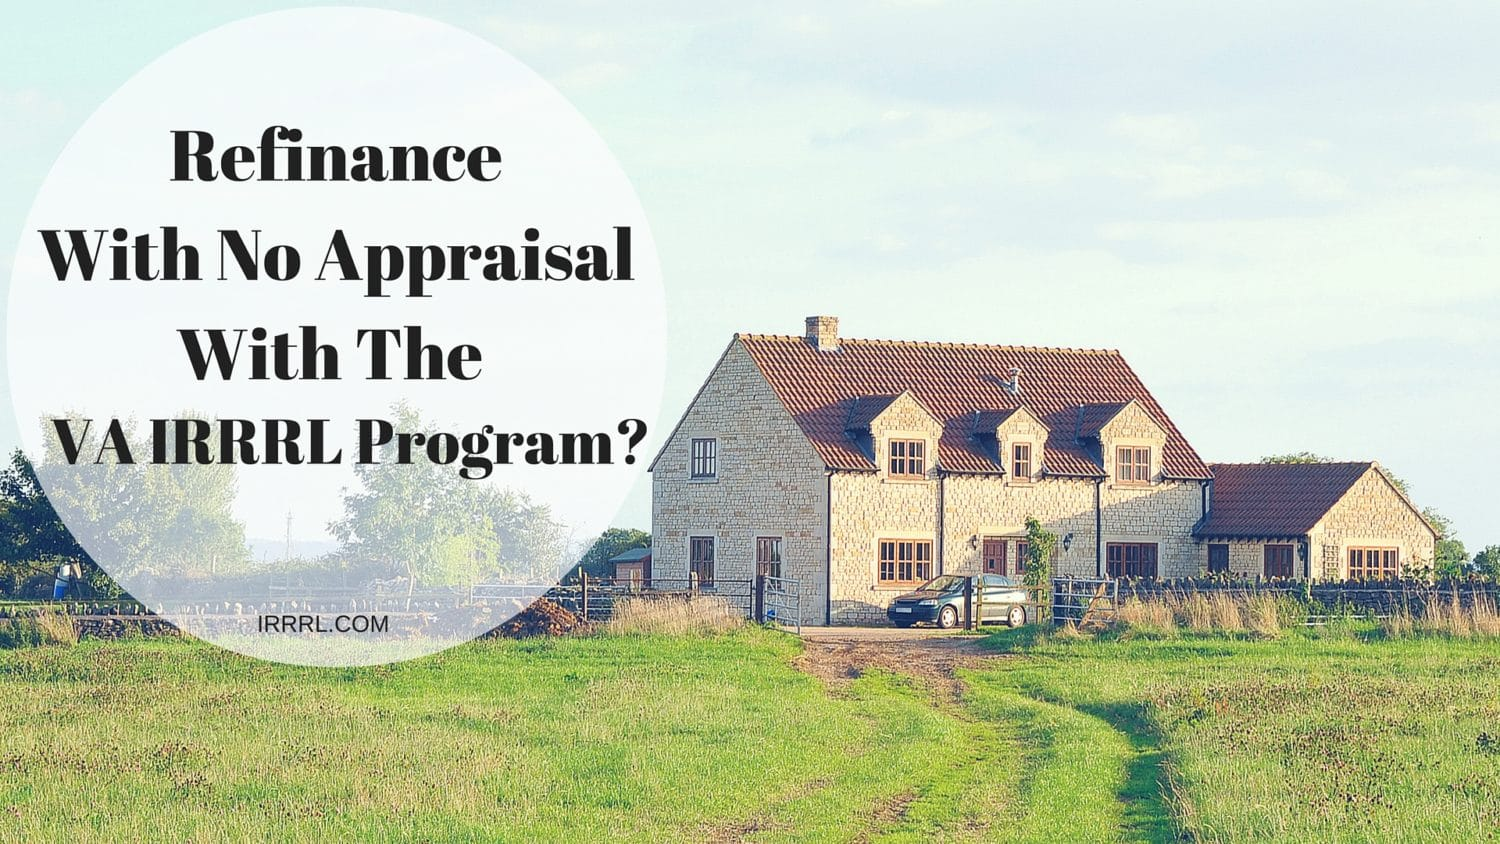 Refinance With No Appraisal With The Va Irrrl Program